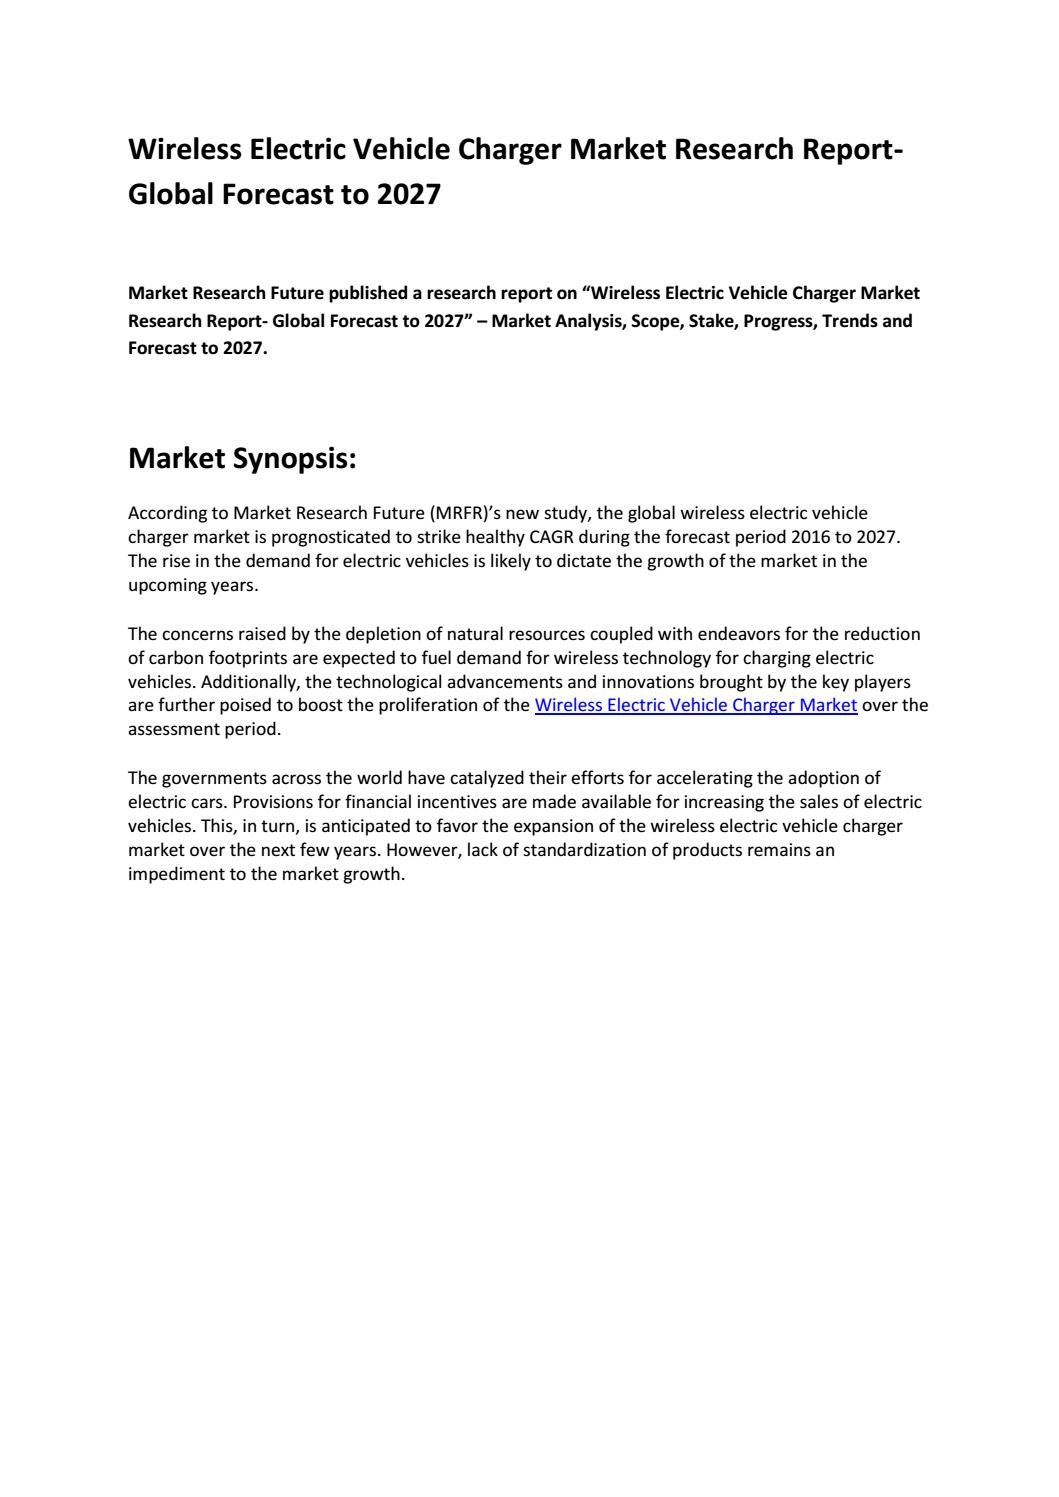 Wireless Electric Vehicle Charger Market Size Revenue And Forecast 2027 By Market Research Future Reports Issuu